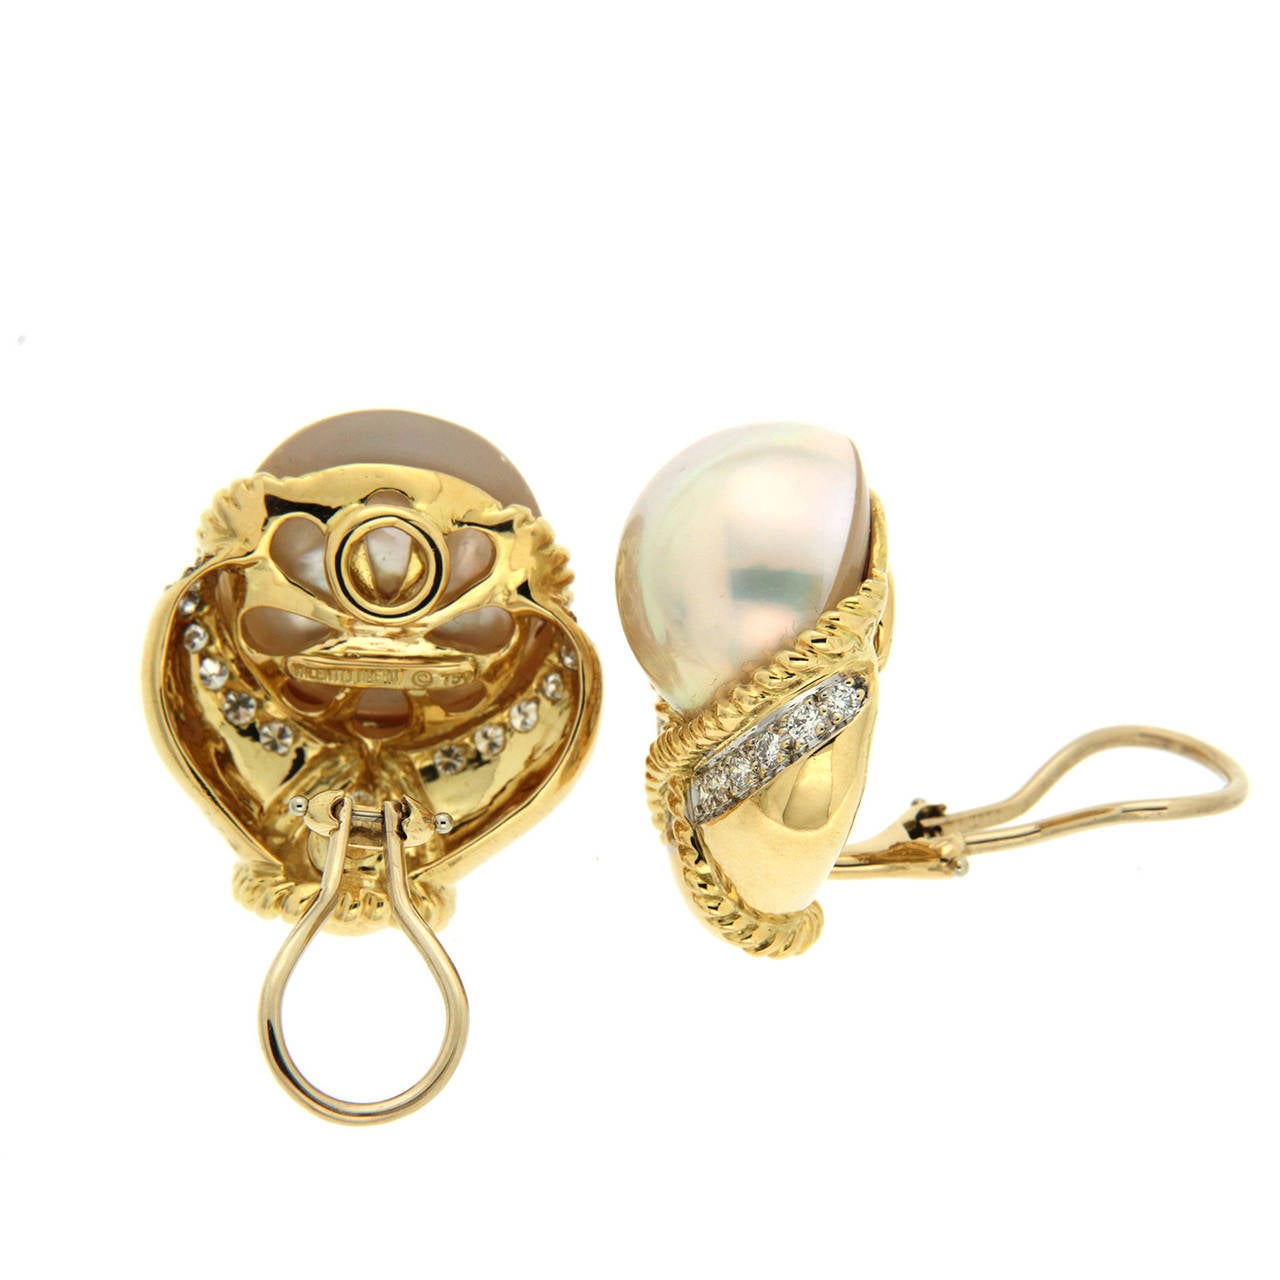 Mabe Pearl earrings surrounded by 18K Yellow Gold Twisted ropes and Round Diamonds